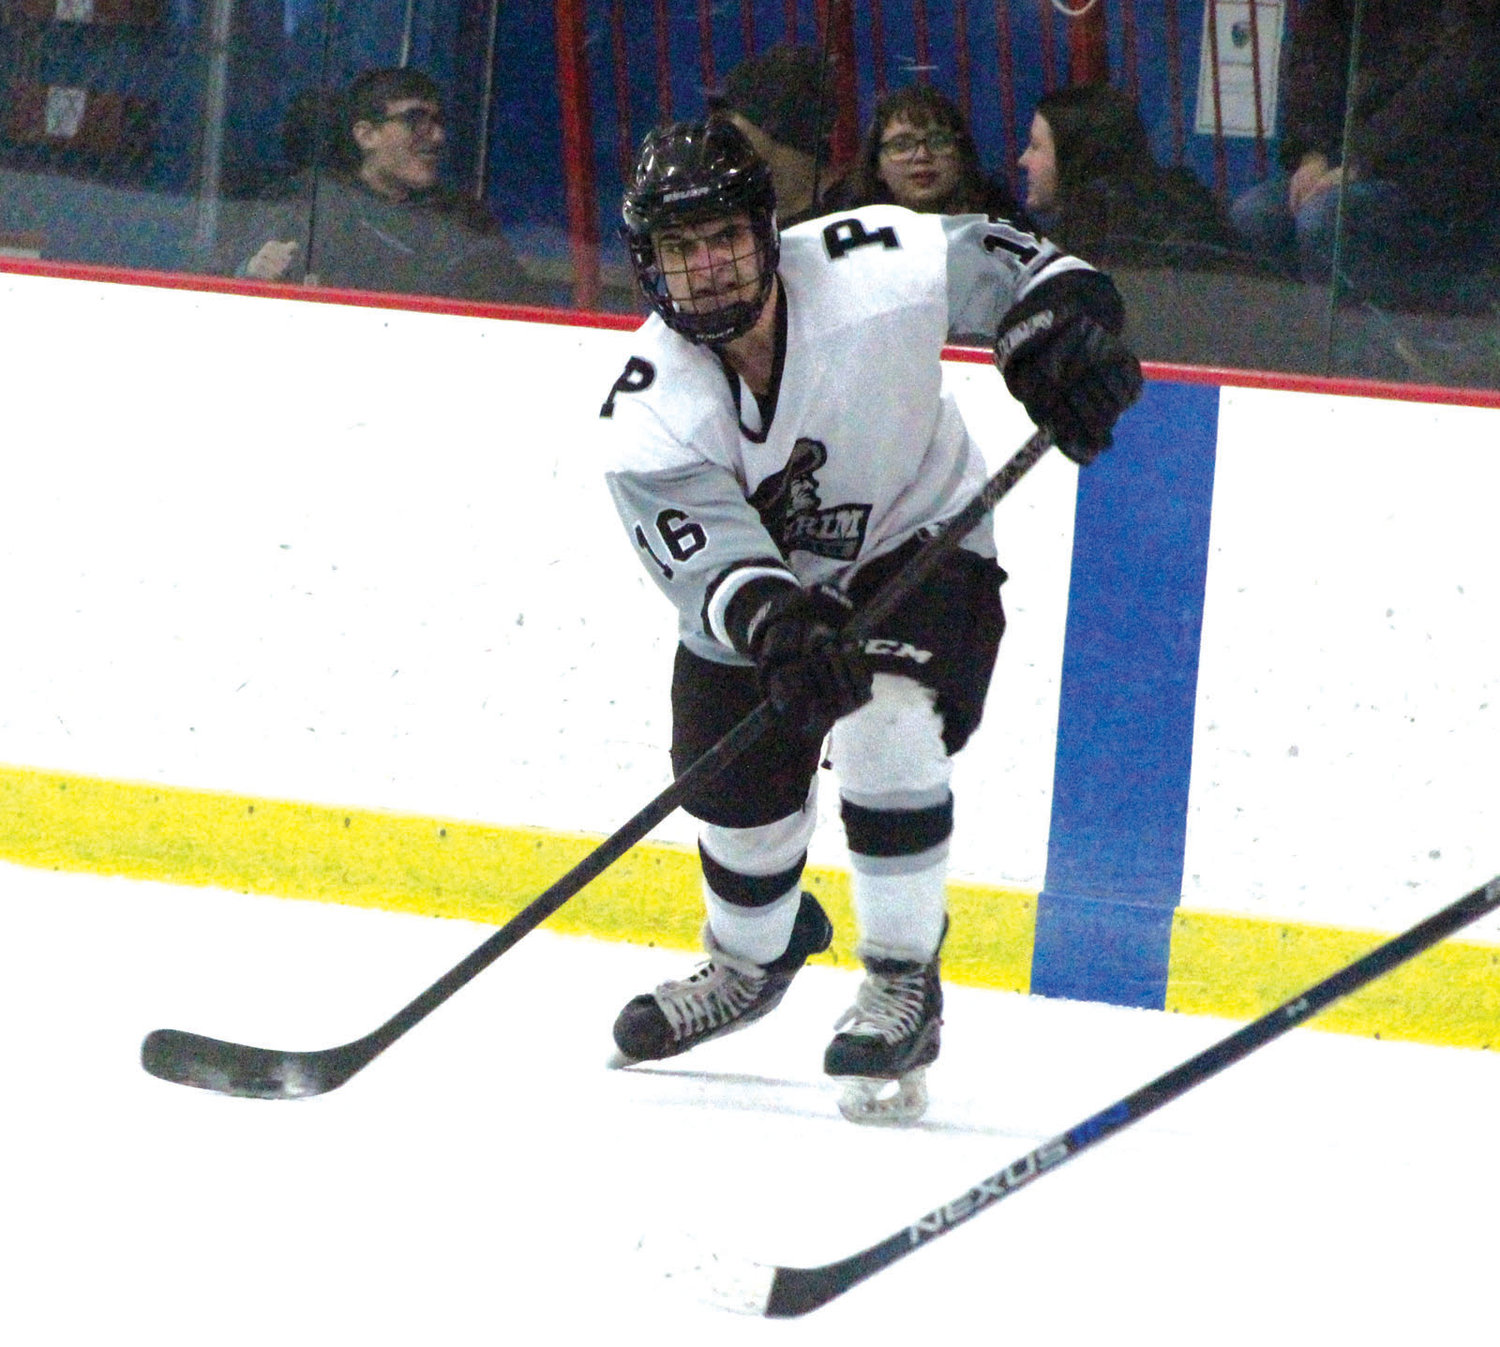 ALONG THE BOARDS: Pilgrim's Chris Quirk.